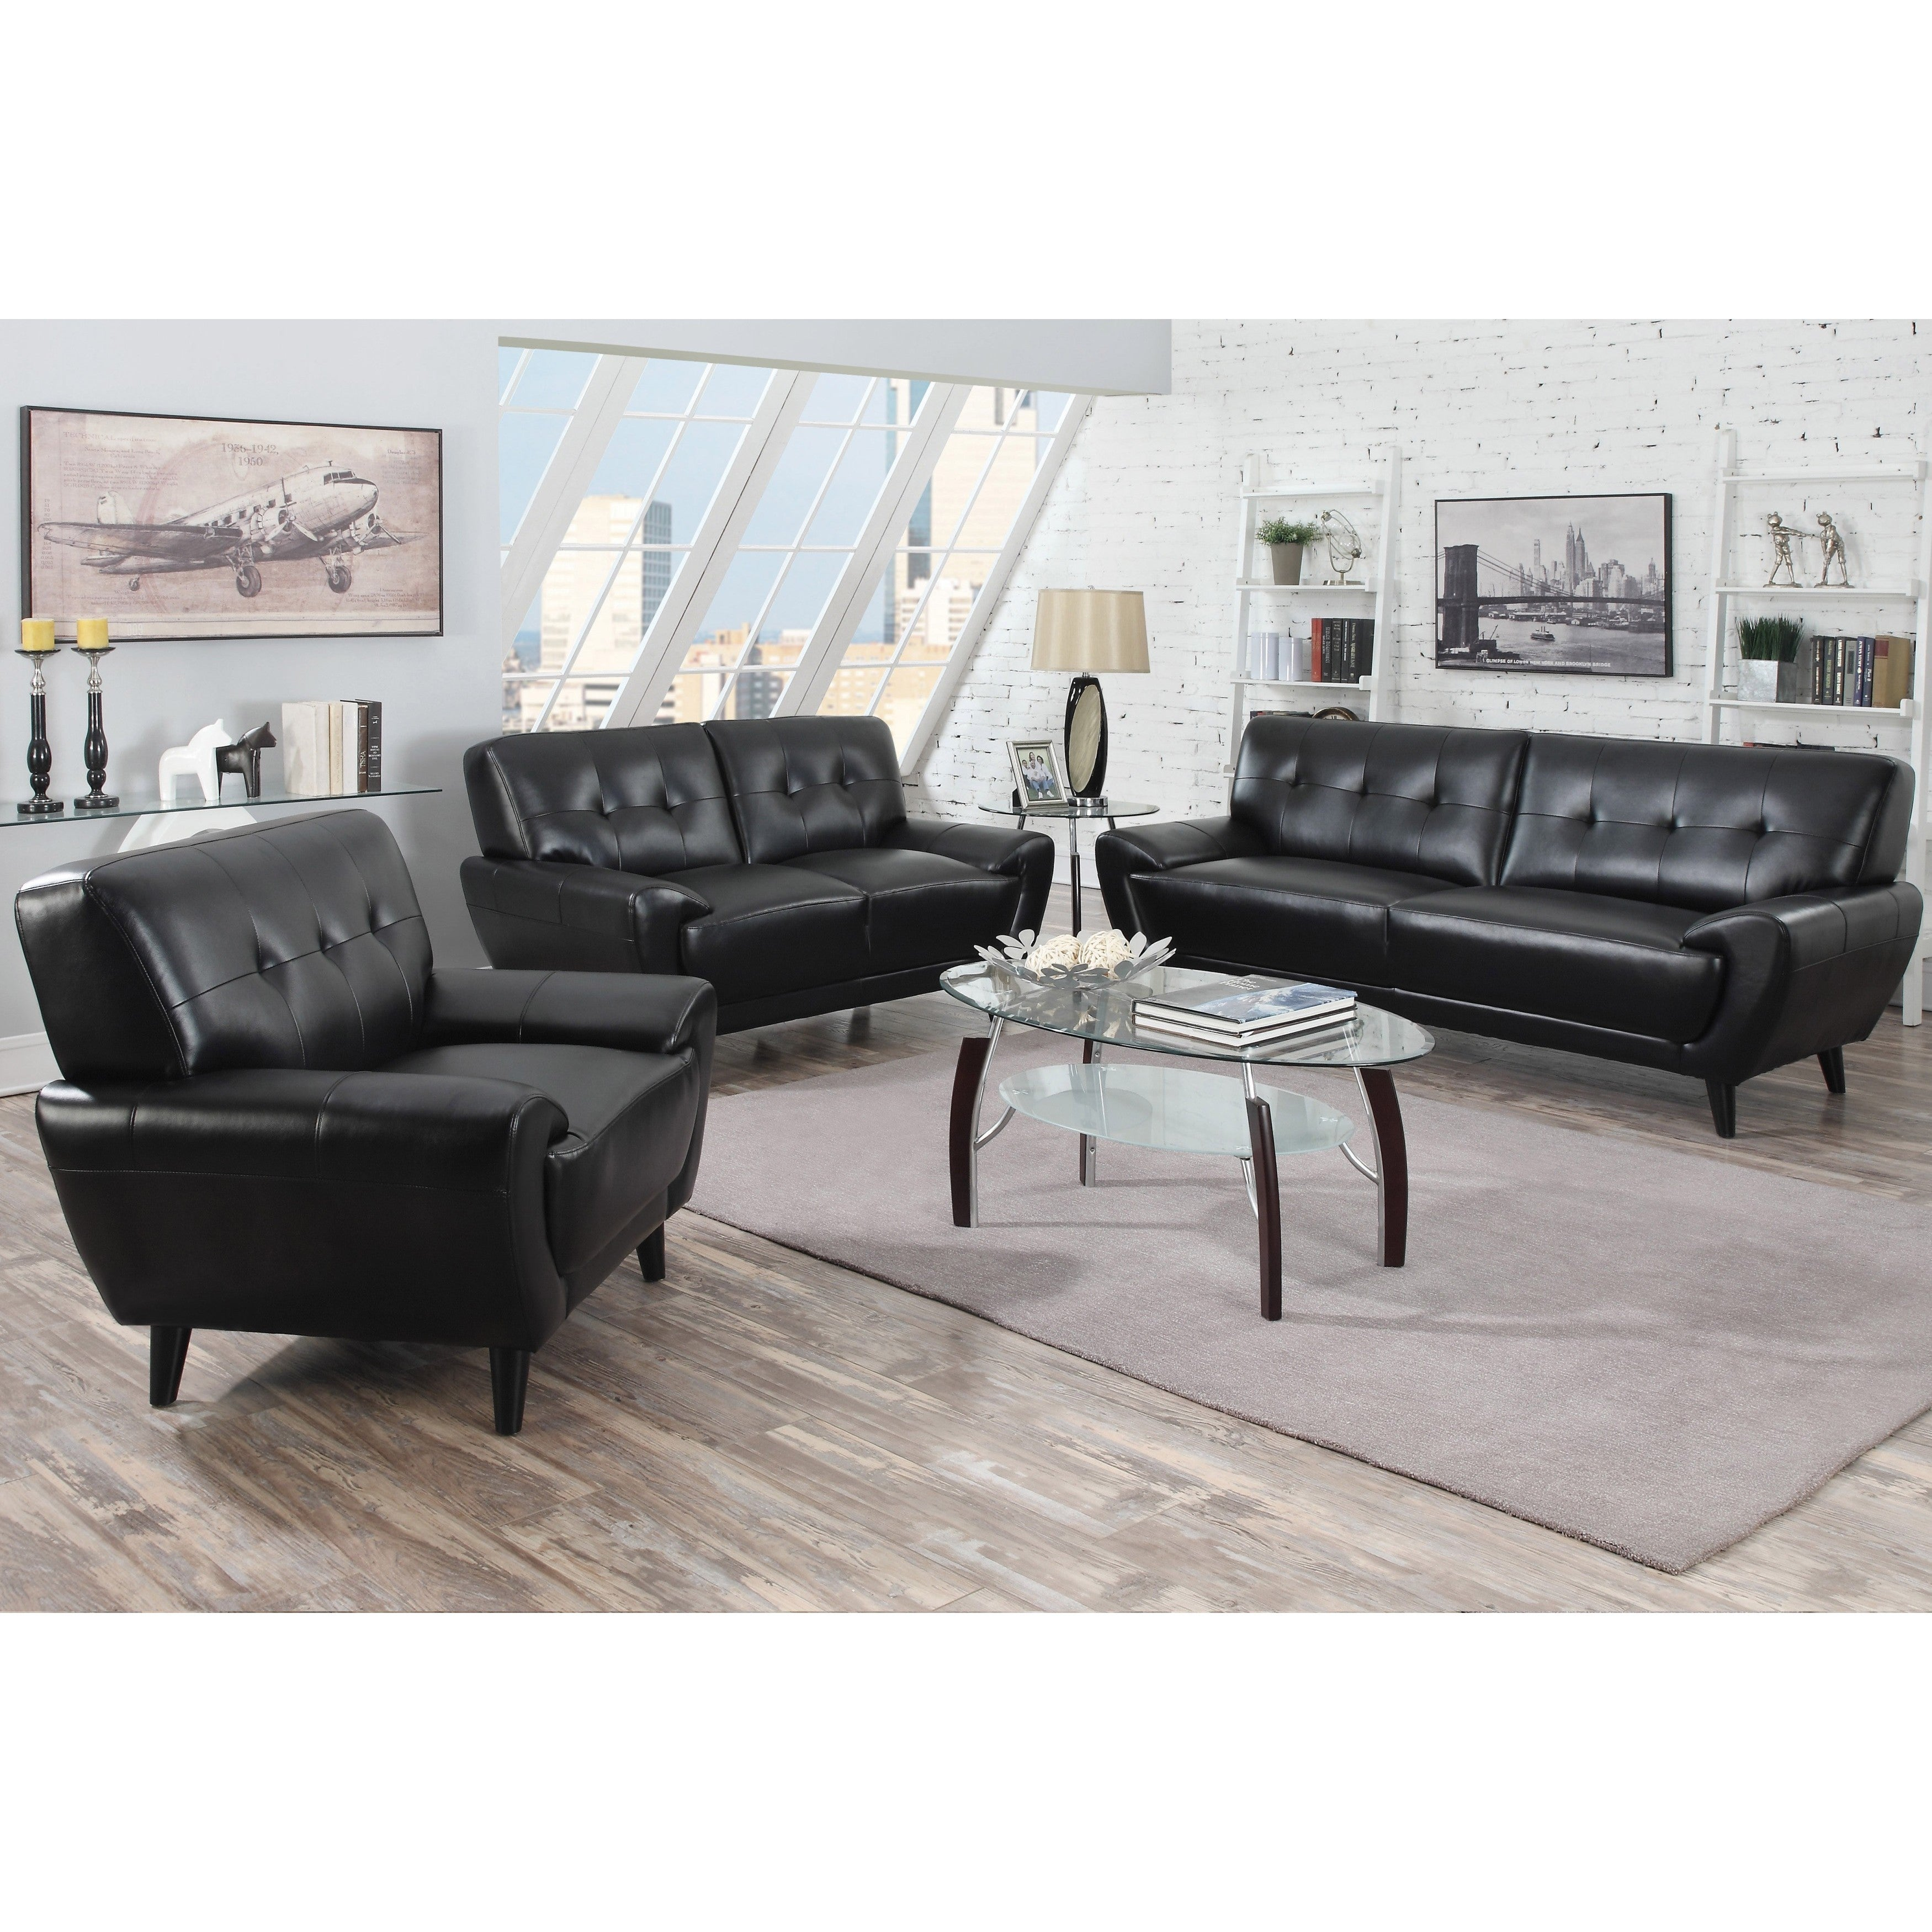 Hughes Mid-century Tufted Design Living Room Collection (...